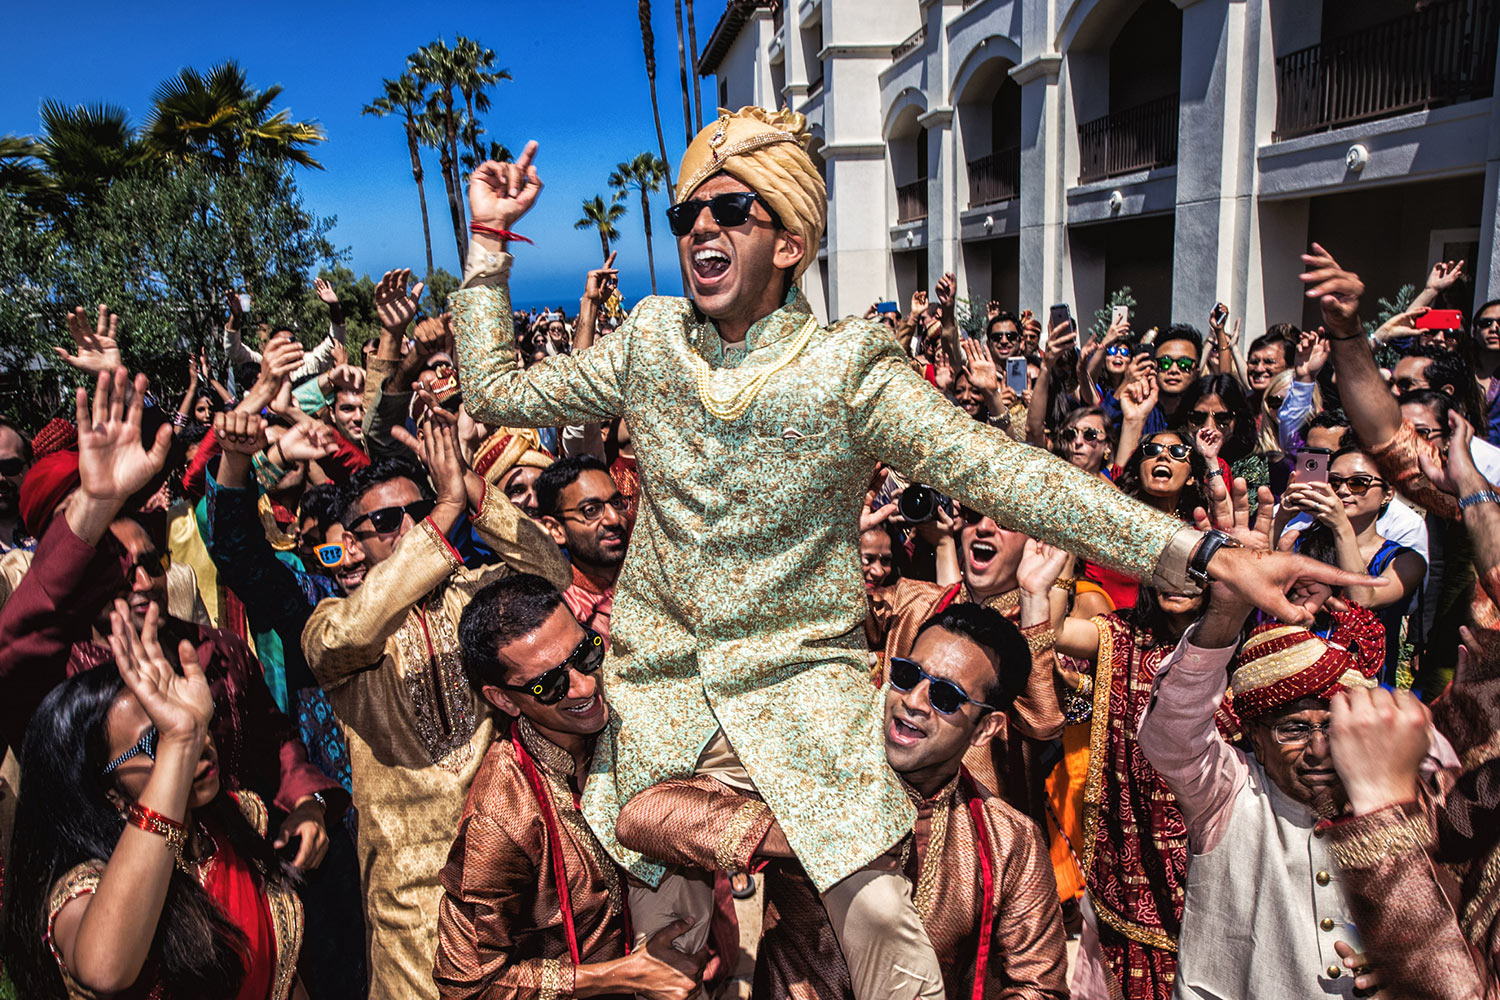 Happy Indian groom crowd surfing by Callaway Gable - Los Angeles